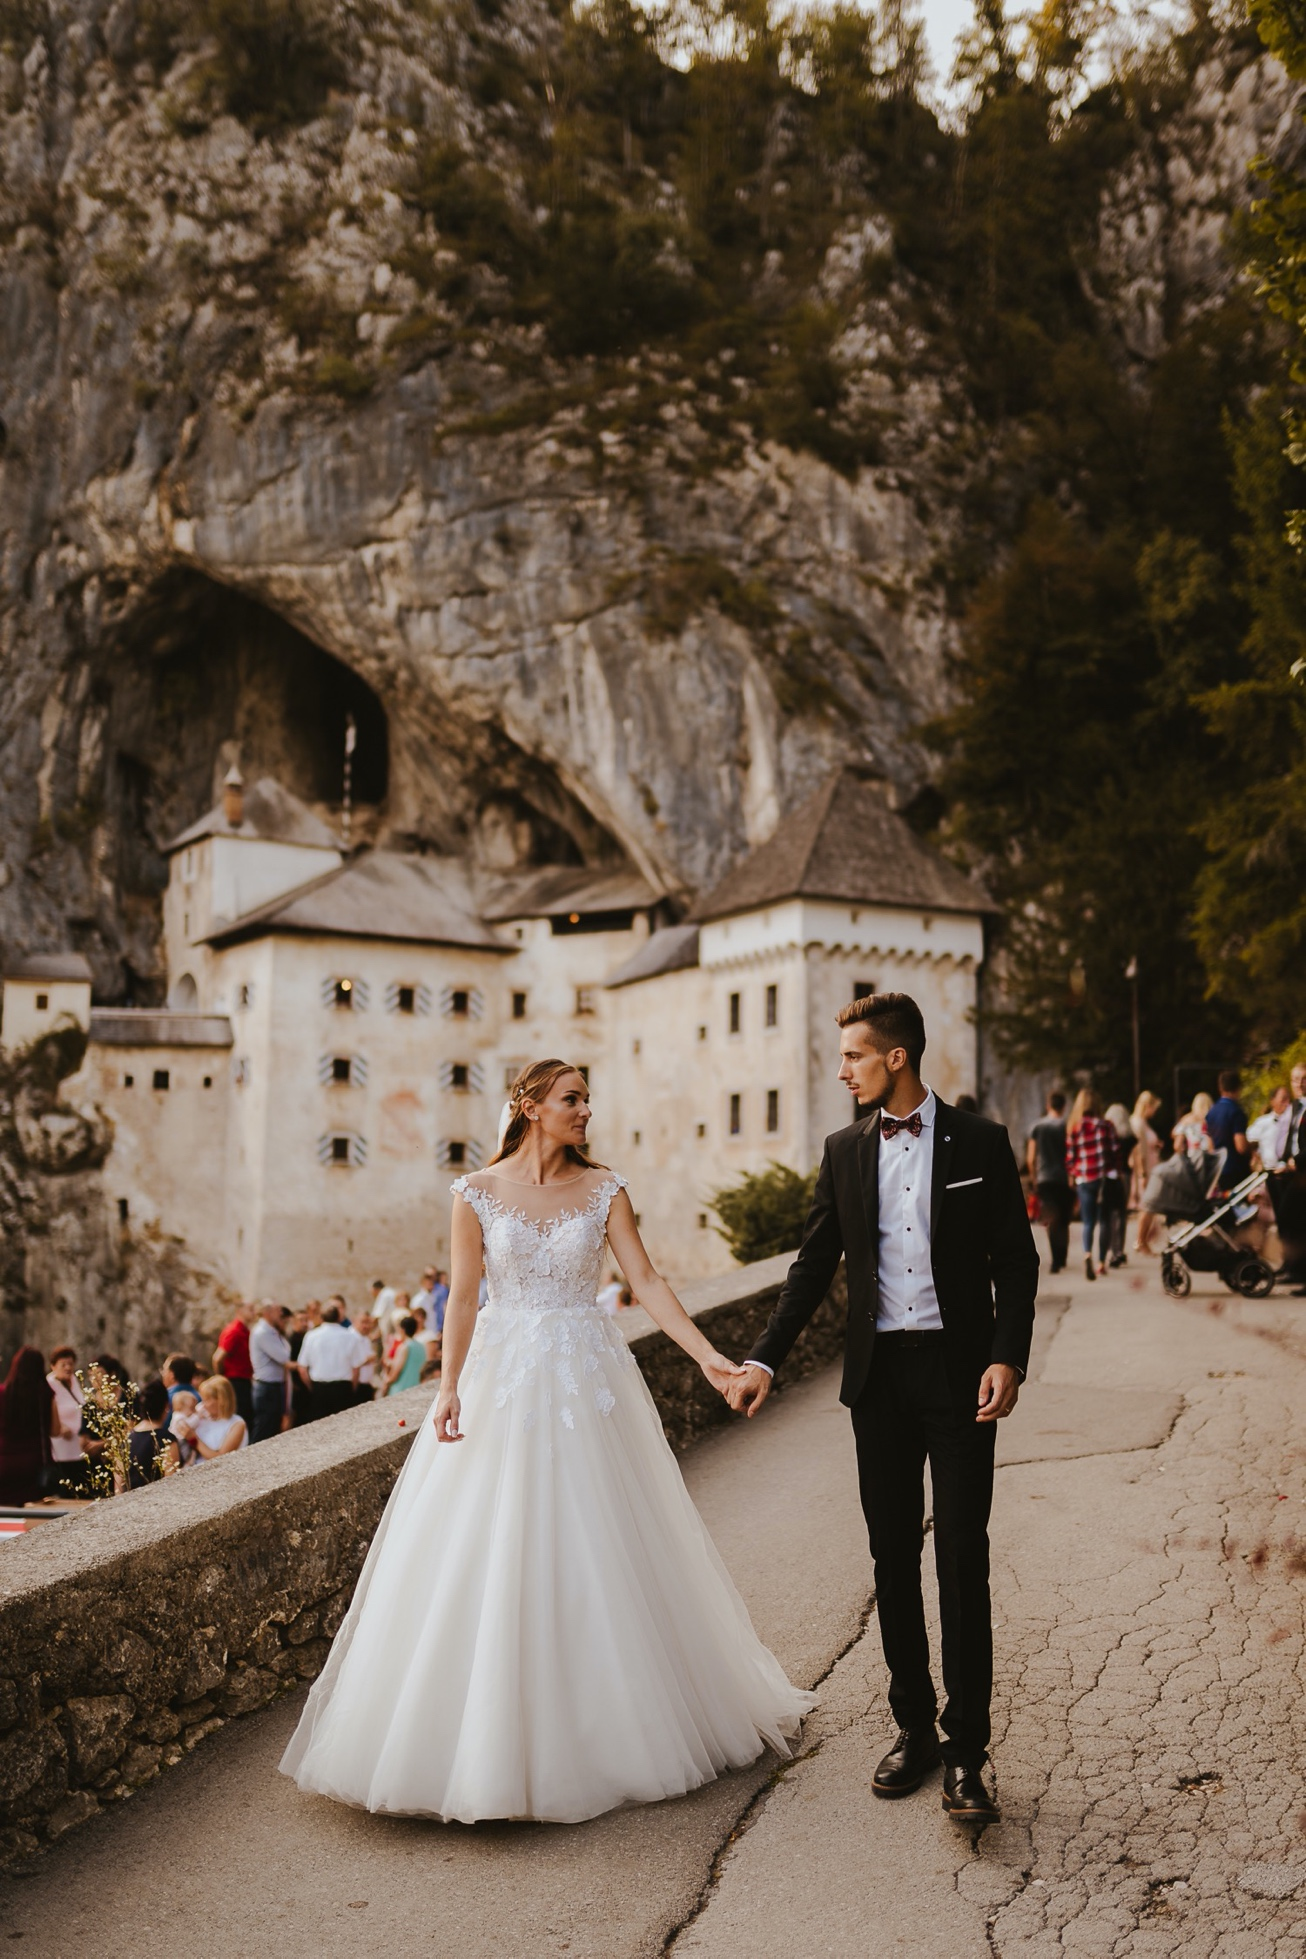 60 princess castle wedding predjama postojna